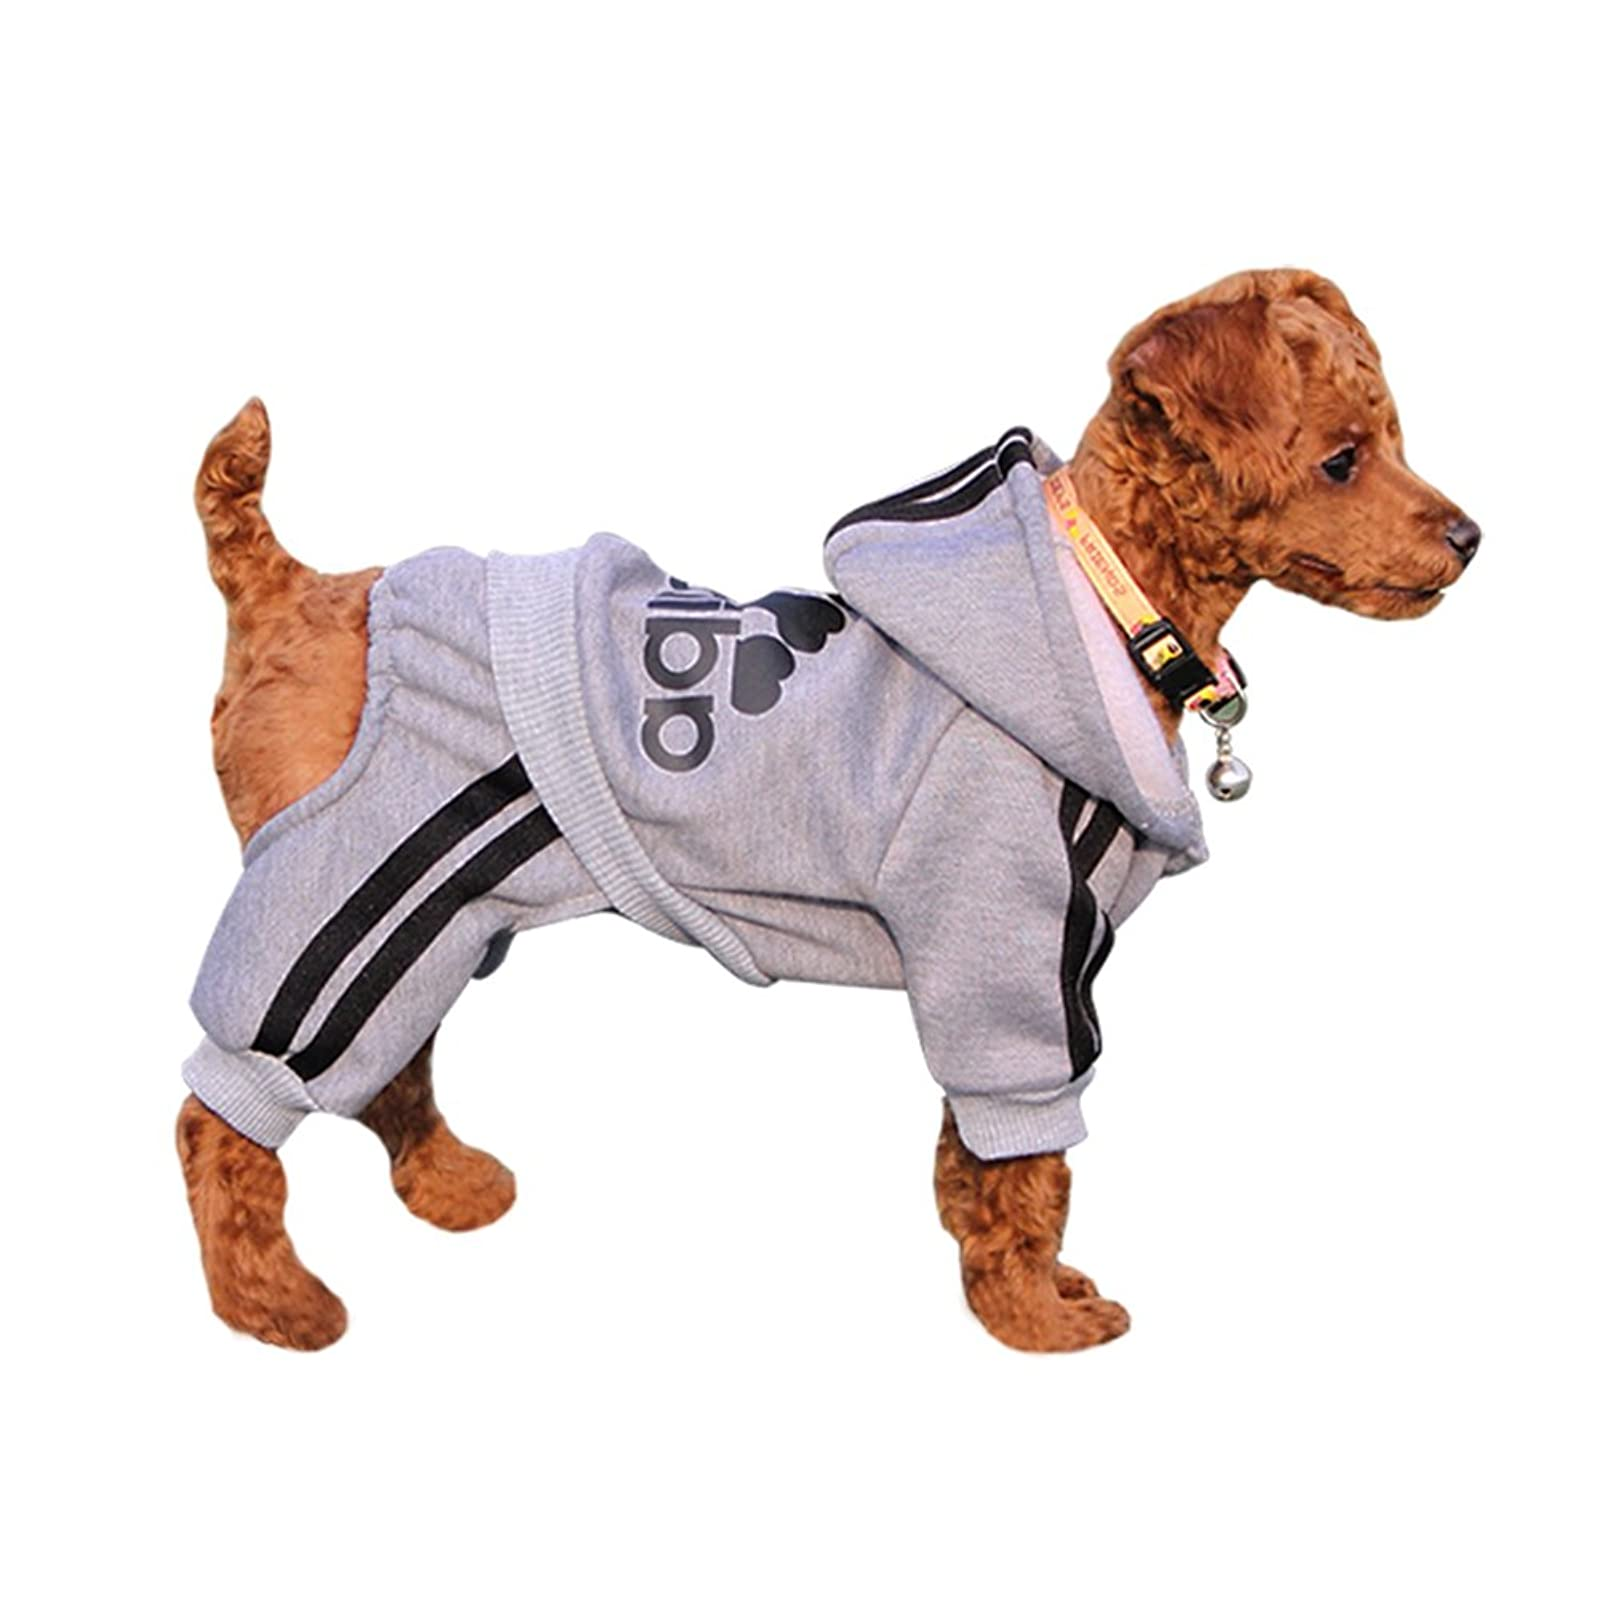 EastCities Winter Puppy HoodieSmall Dogs Warm Coat AD21 - 1